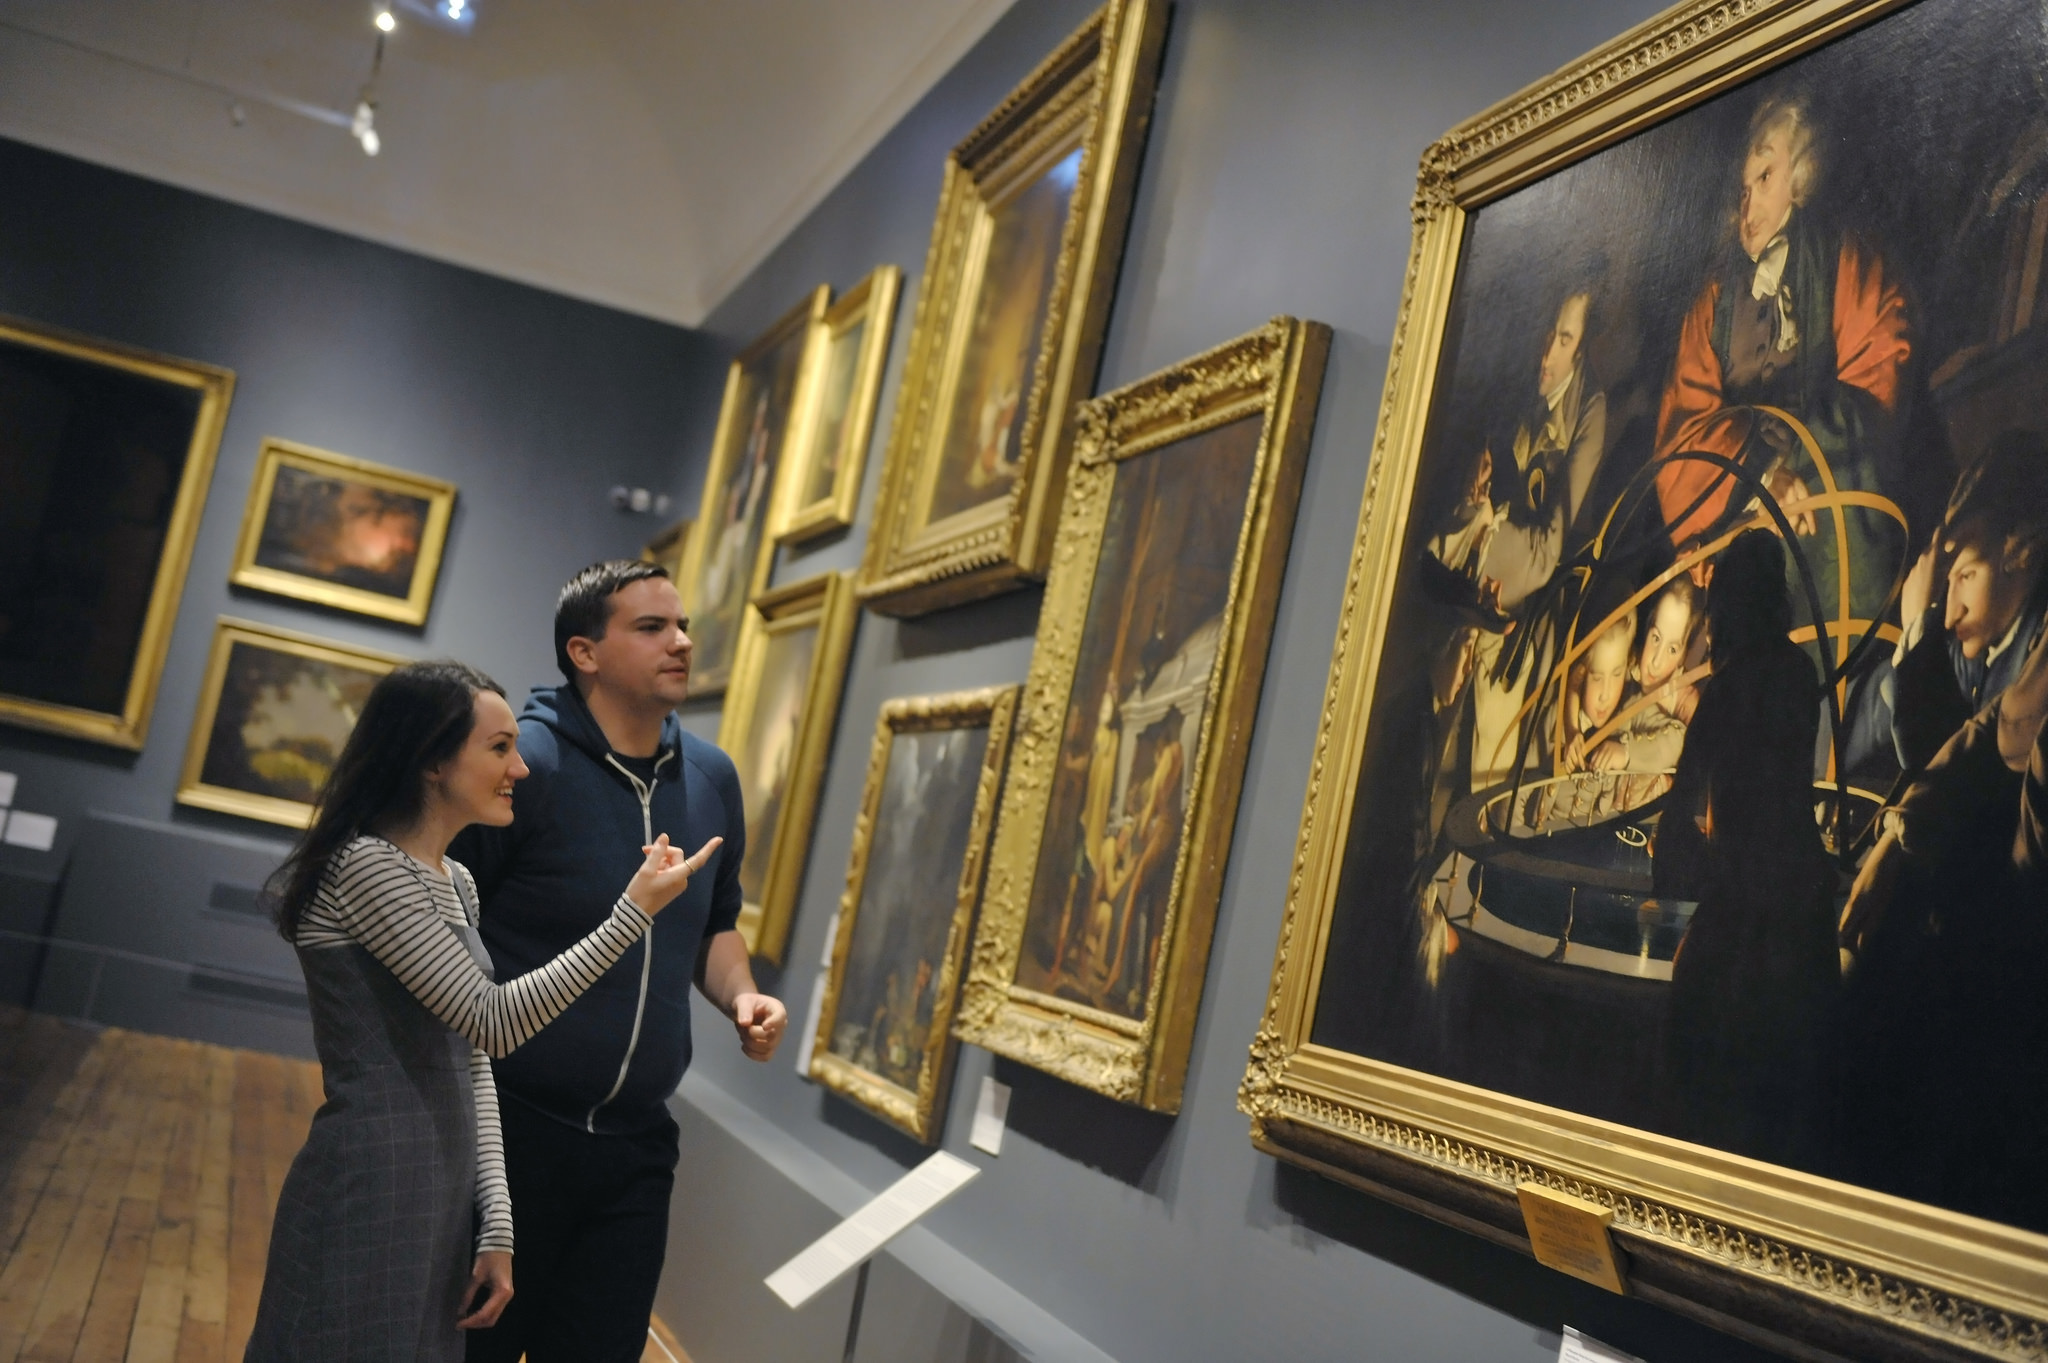 Two people look at a painting in a gallery.